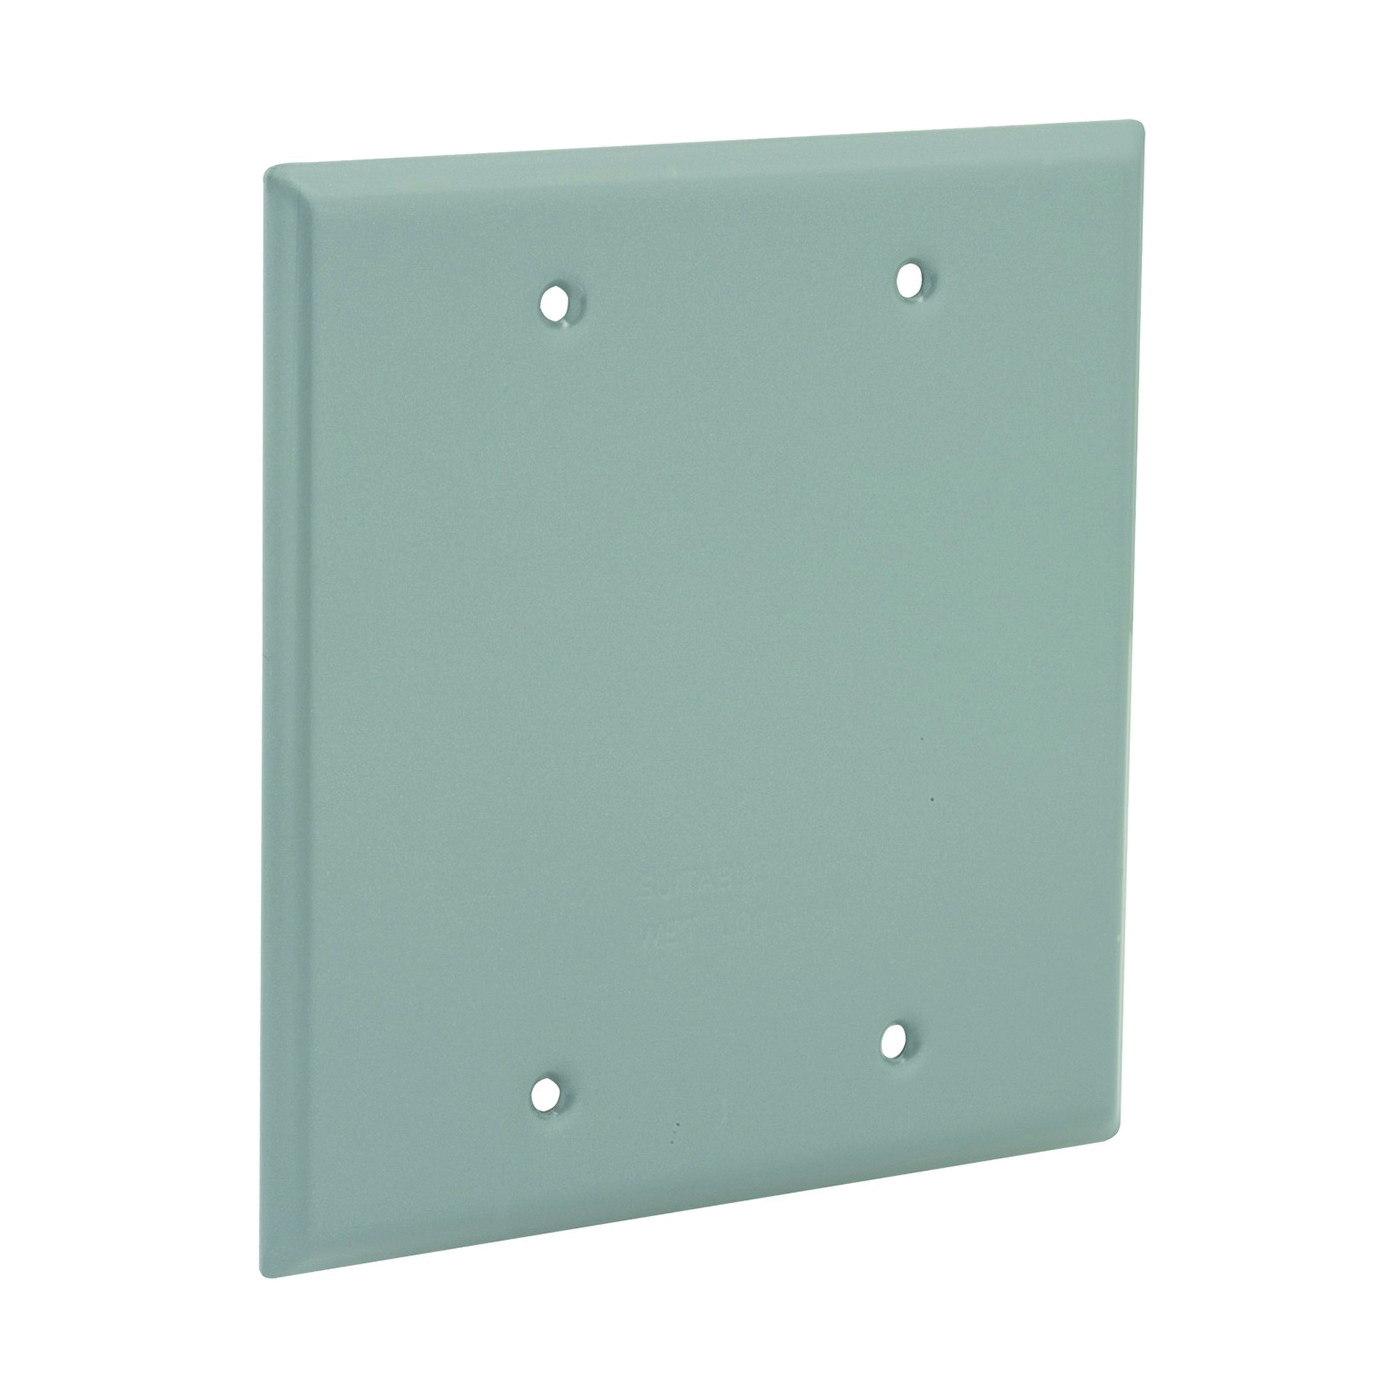 Picture of HUBBELL 5175-0 Cover, 4-1/2 in L, 4-1/2 in W, Aluminum, Gray, Powder-Coated